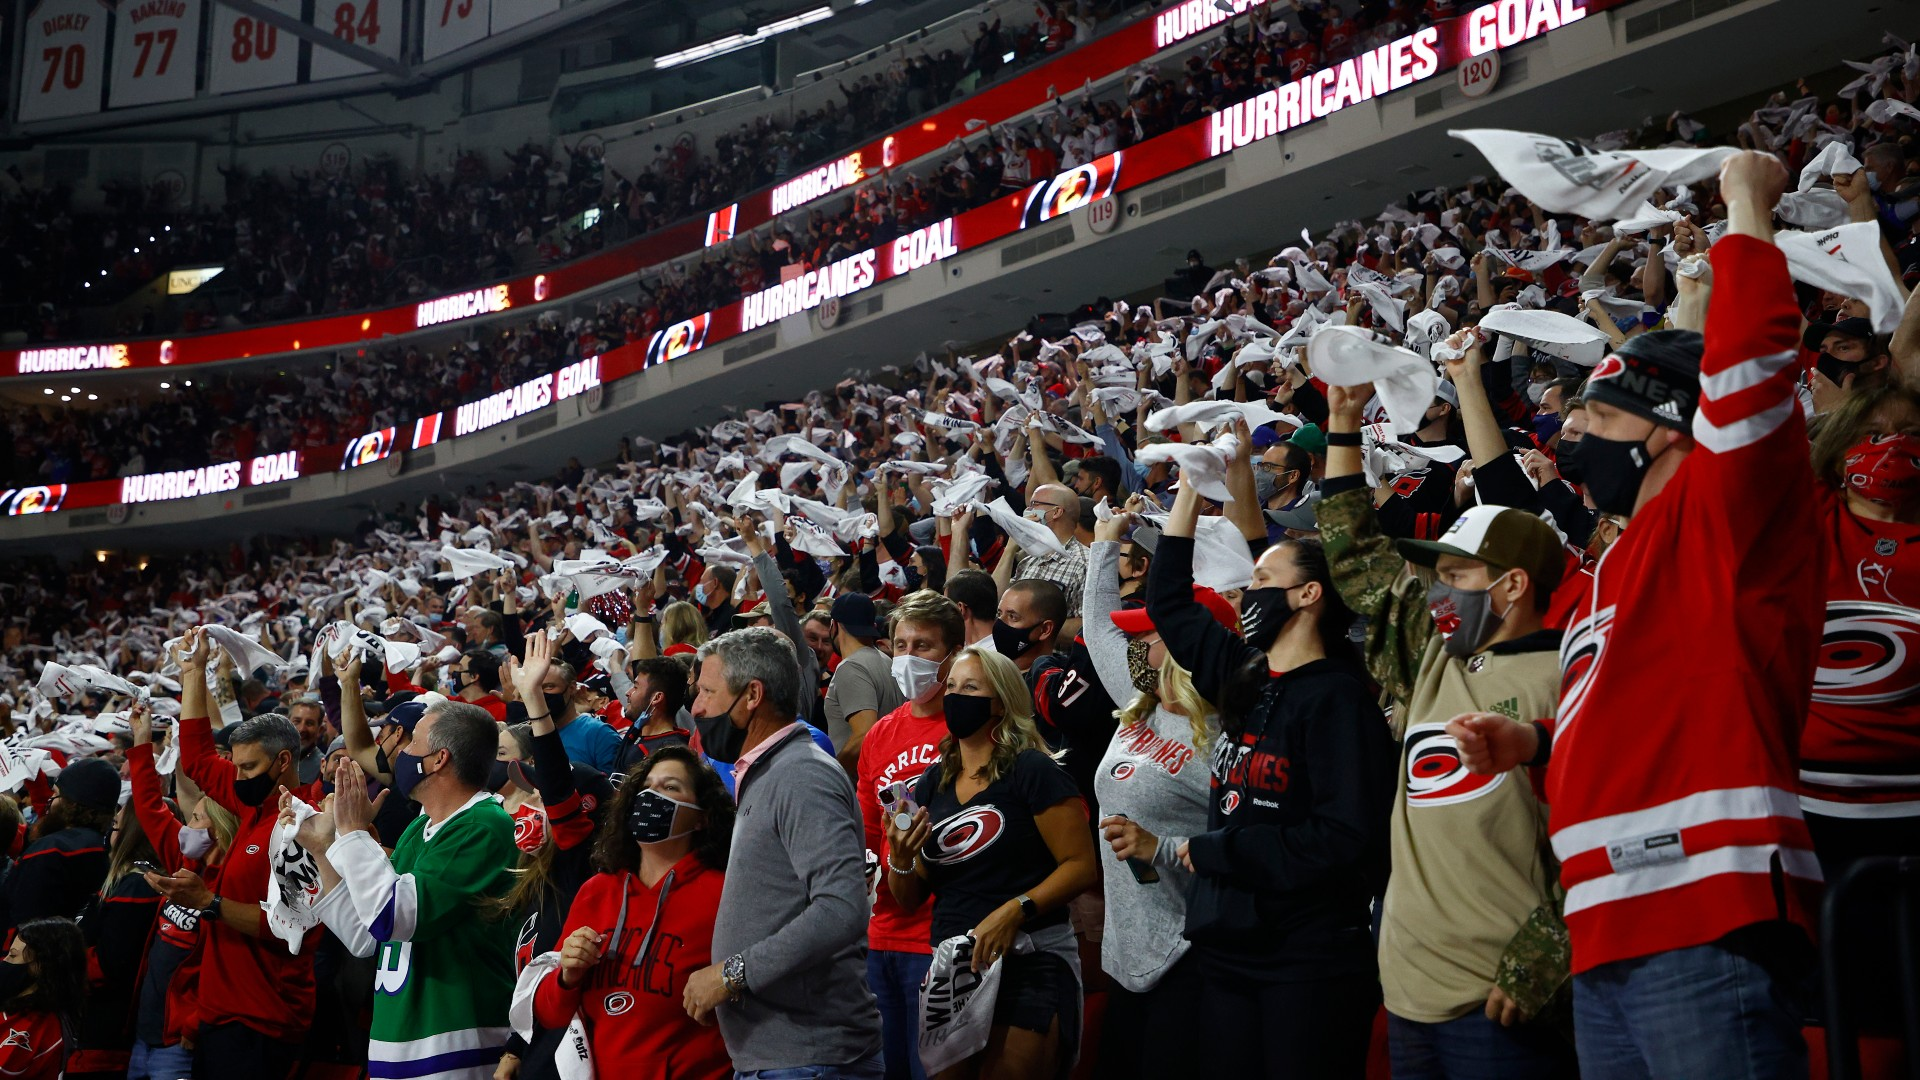 NHL playoff schedule 2021: Updated bracket, dates, times, TV channels for every Round 2 series